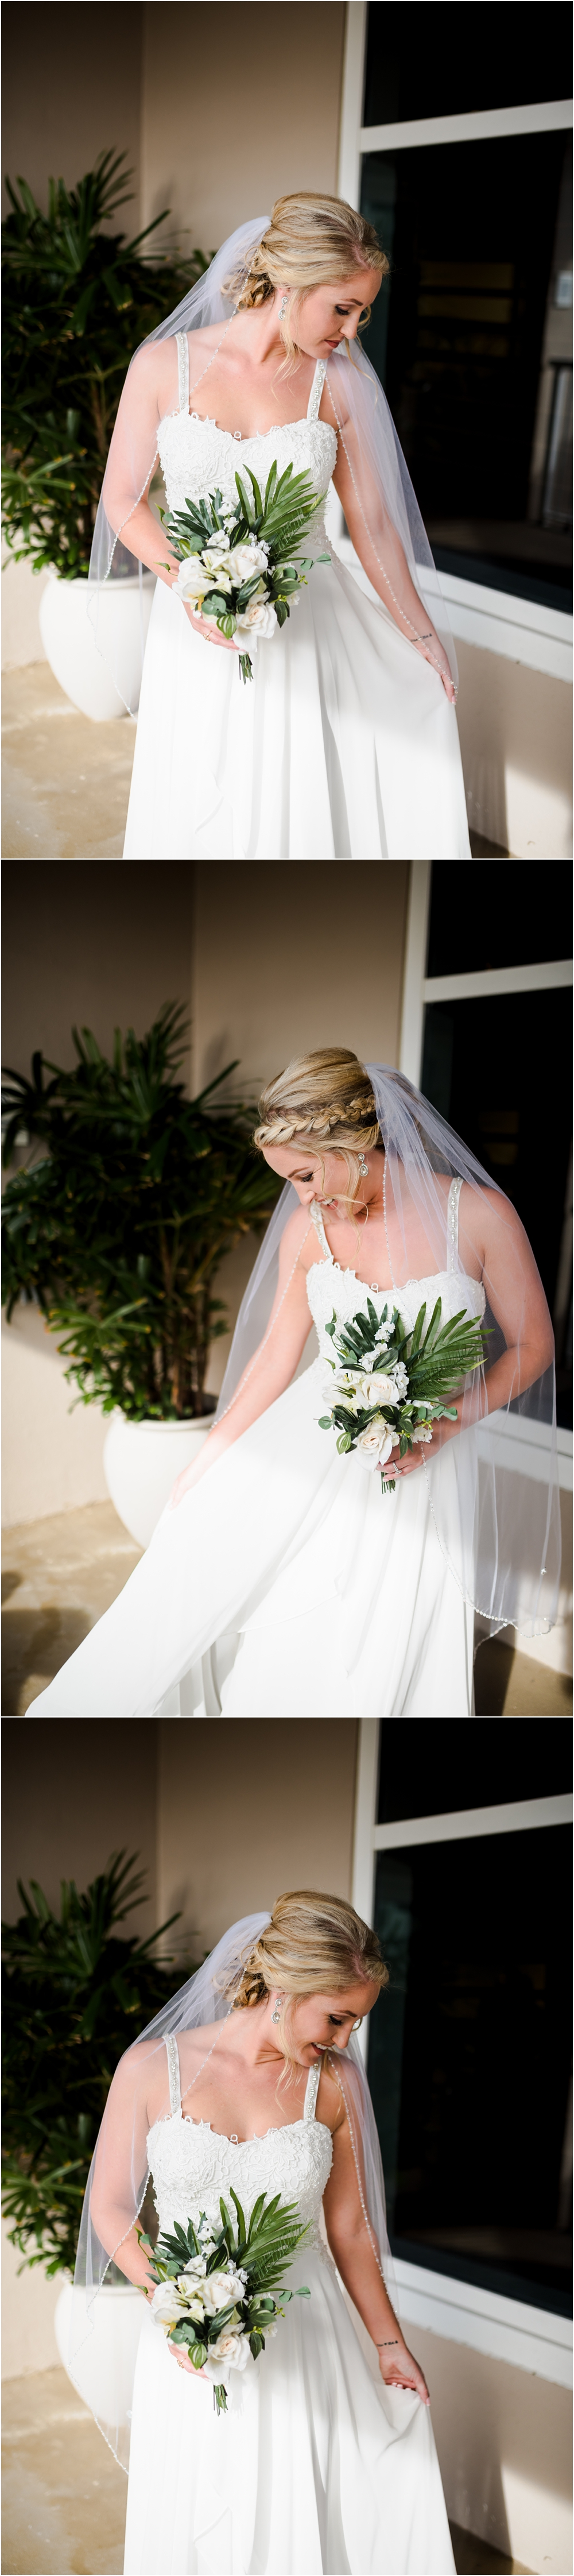 dillard-florida-wedding-photographer-panama-city-beach-dothan-tallahassee-kiersten-grant-photography-80.jpg